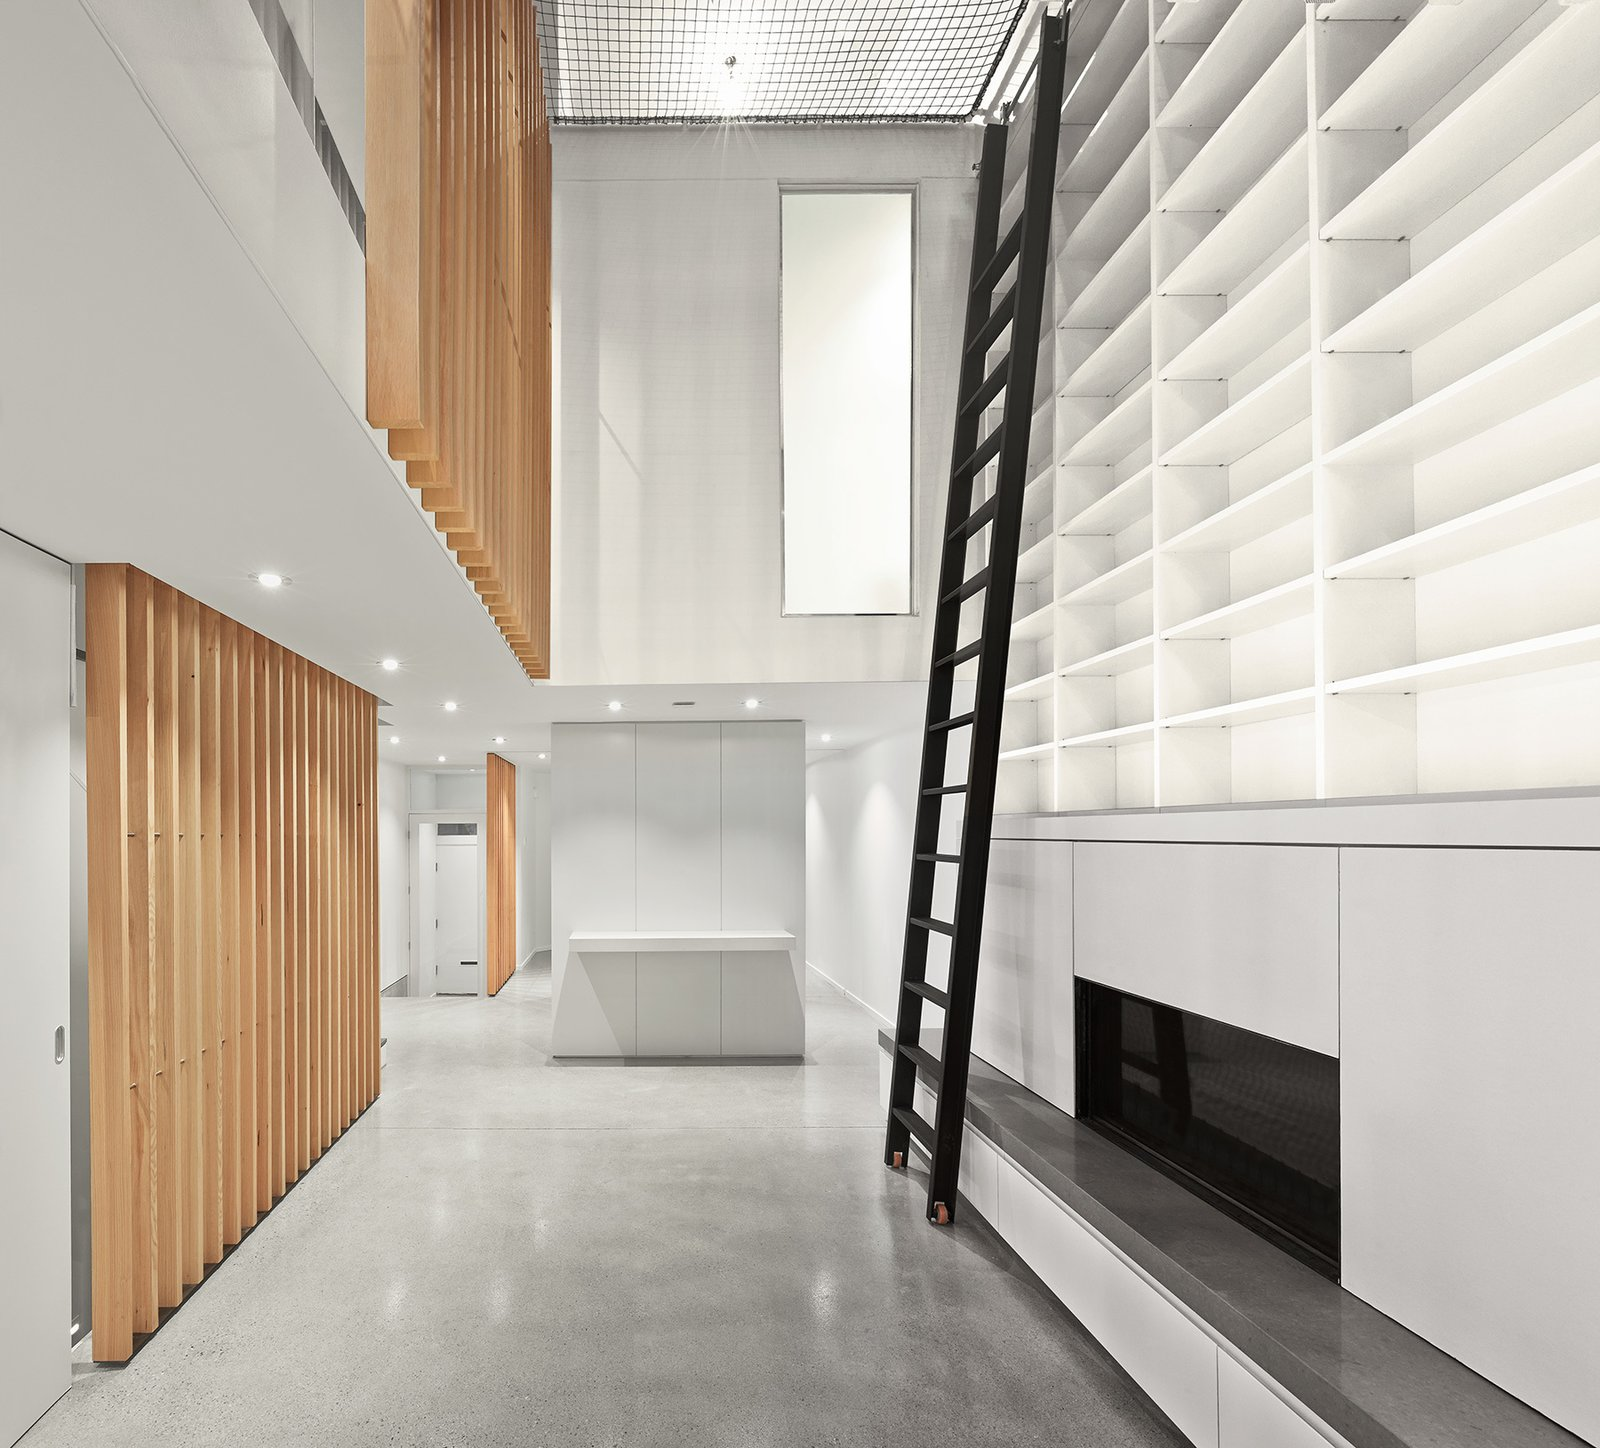 Photo 2 of 5 in Atrium House by RobitailleCurtis